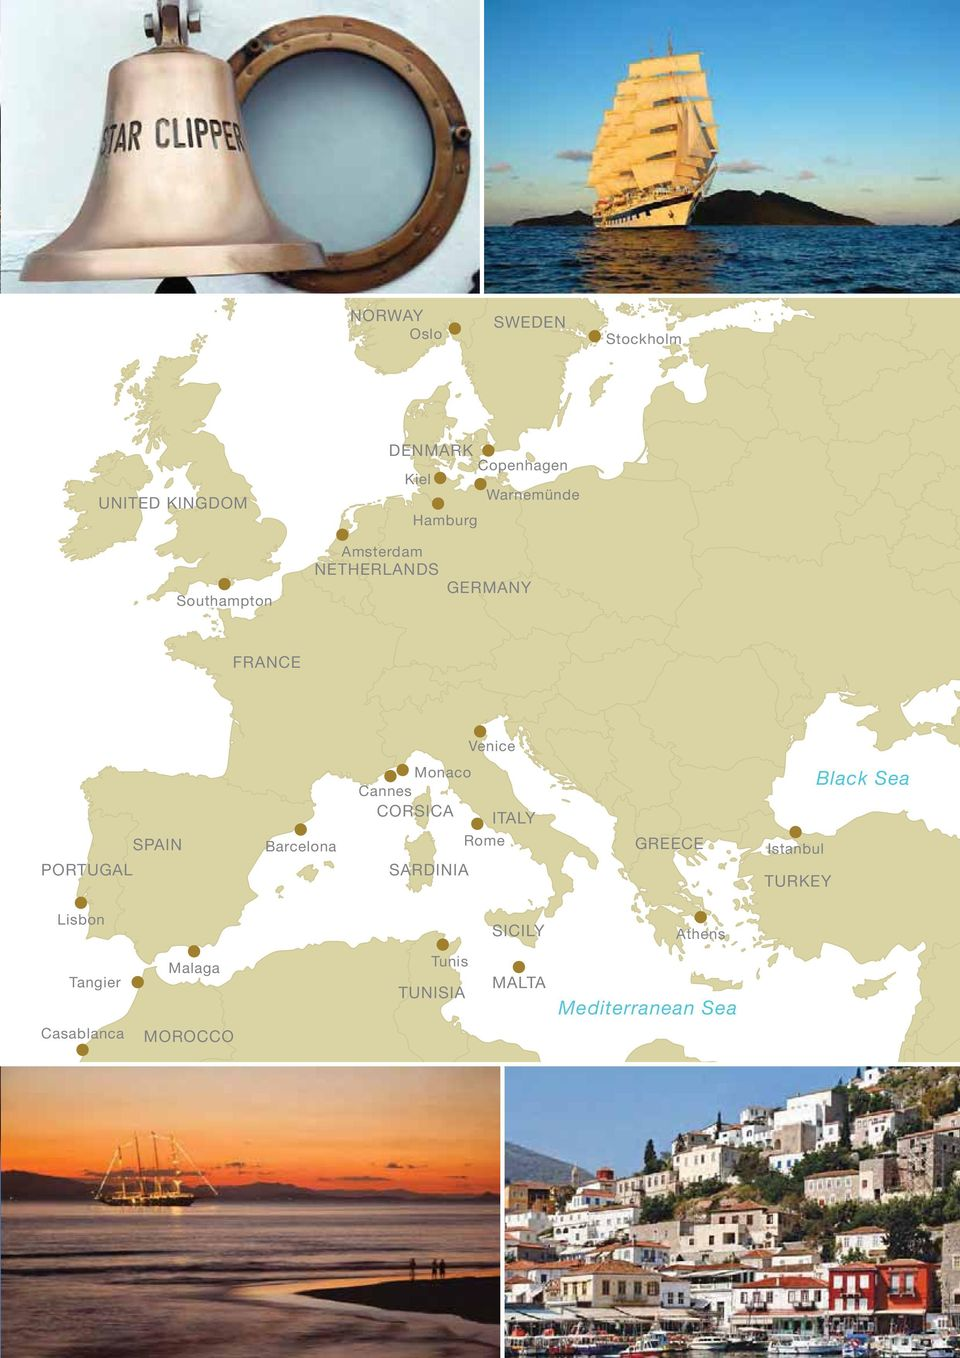 Barcelona aco Cannes CORSICA SARDINIA Rome ITALY GREECE Istanbul TURKEY Black Sea